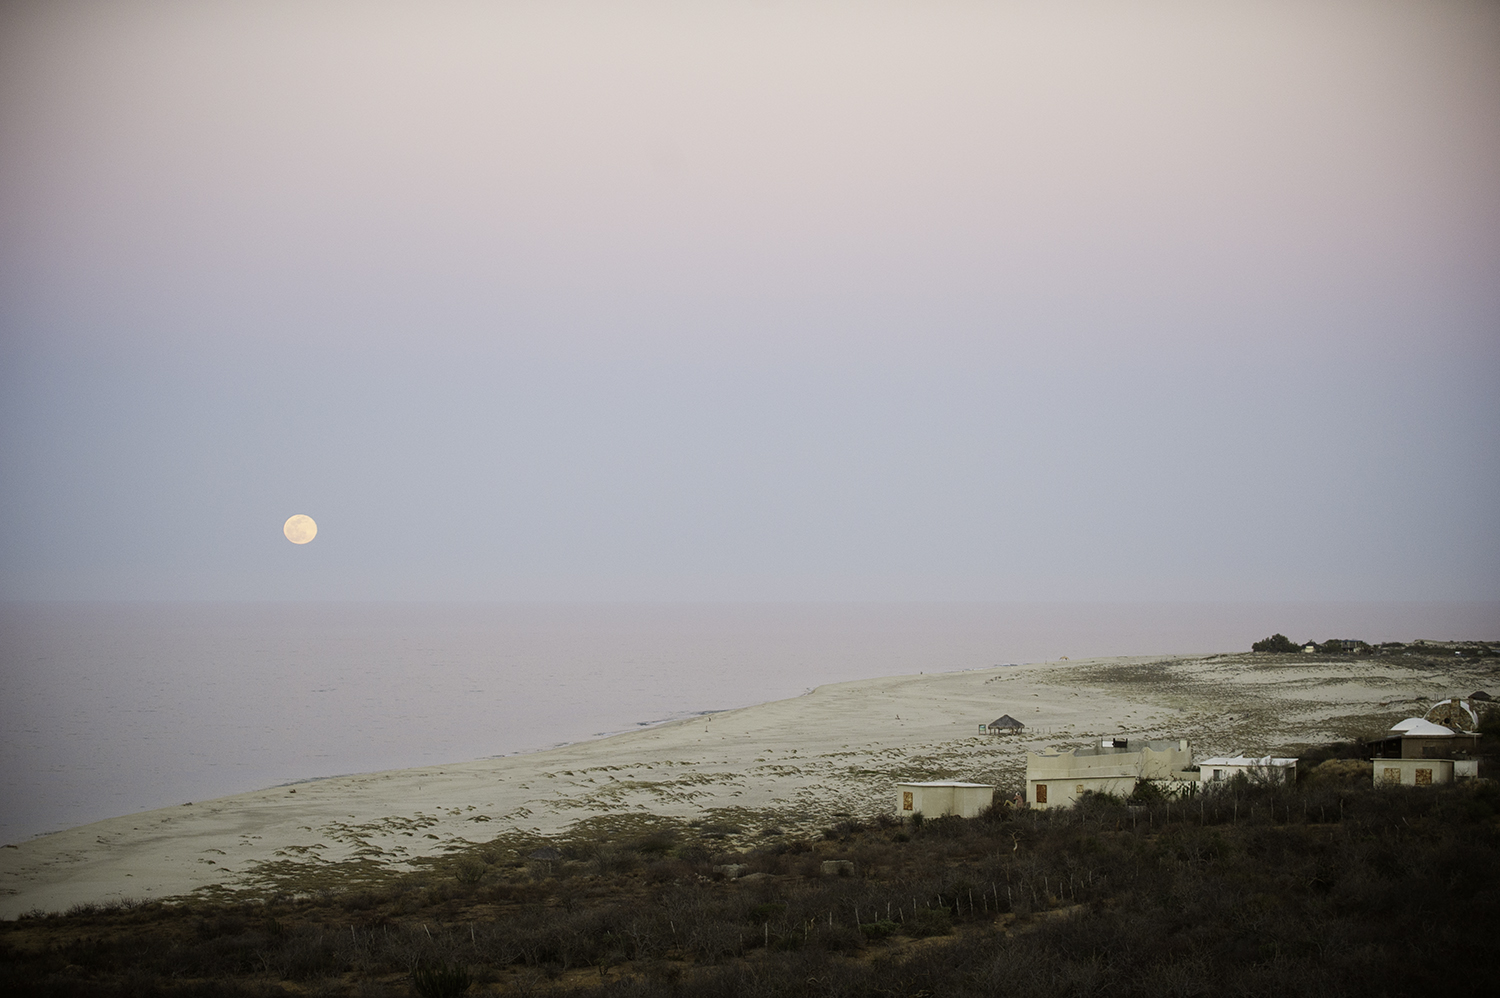 East Cape & Full Moon